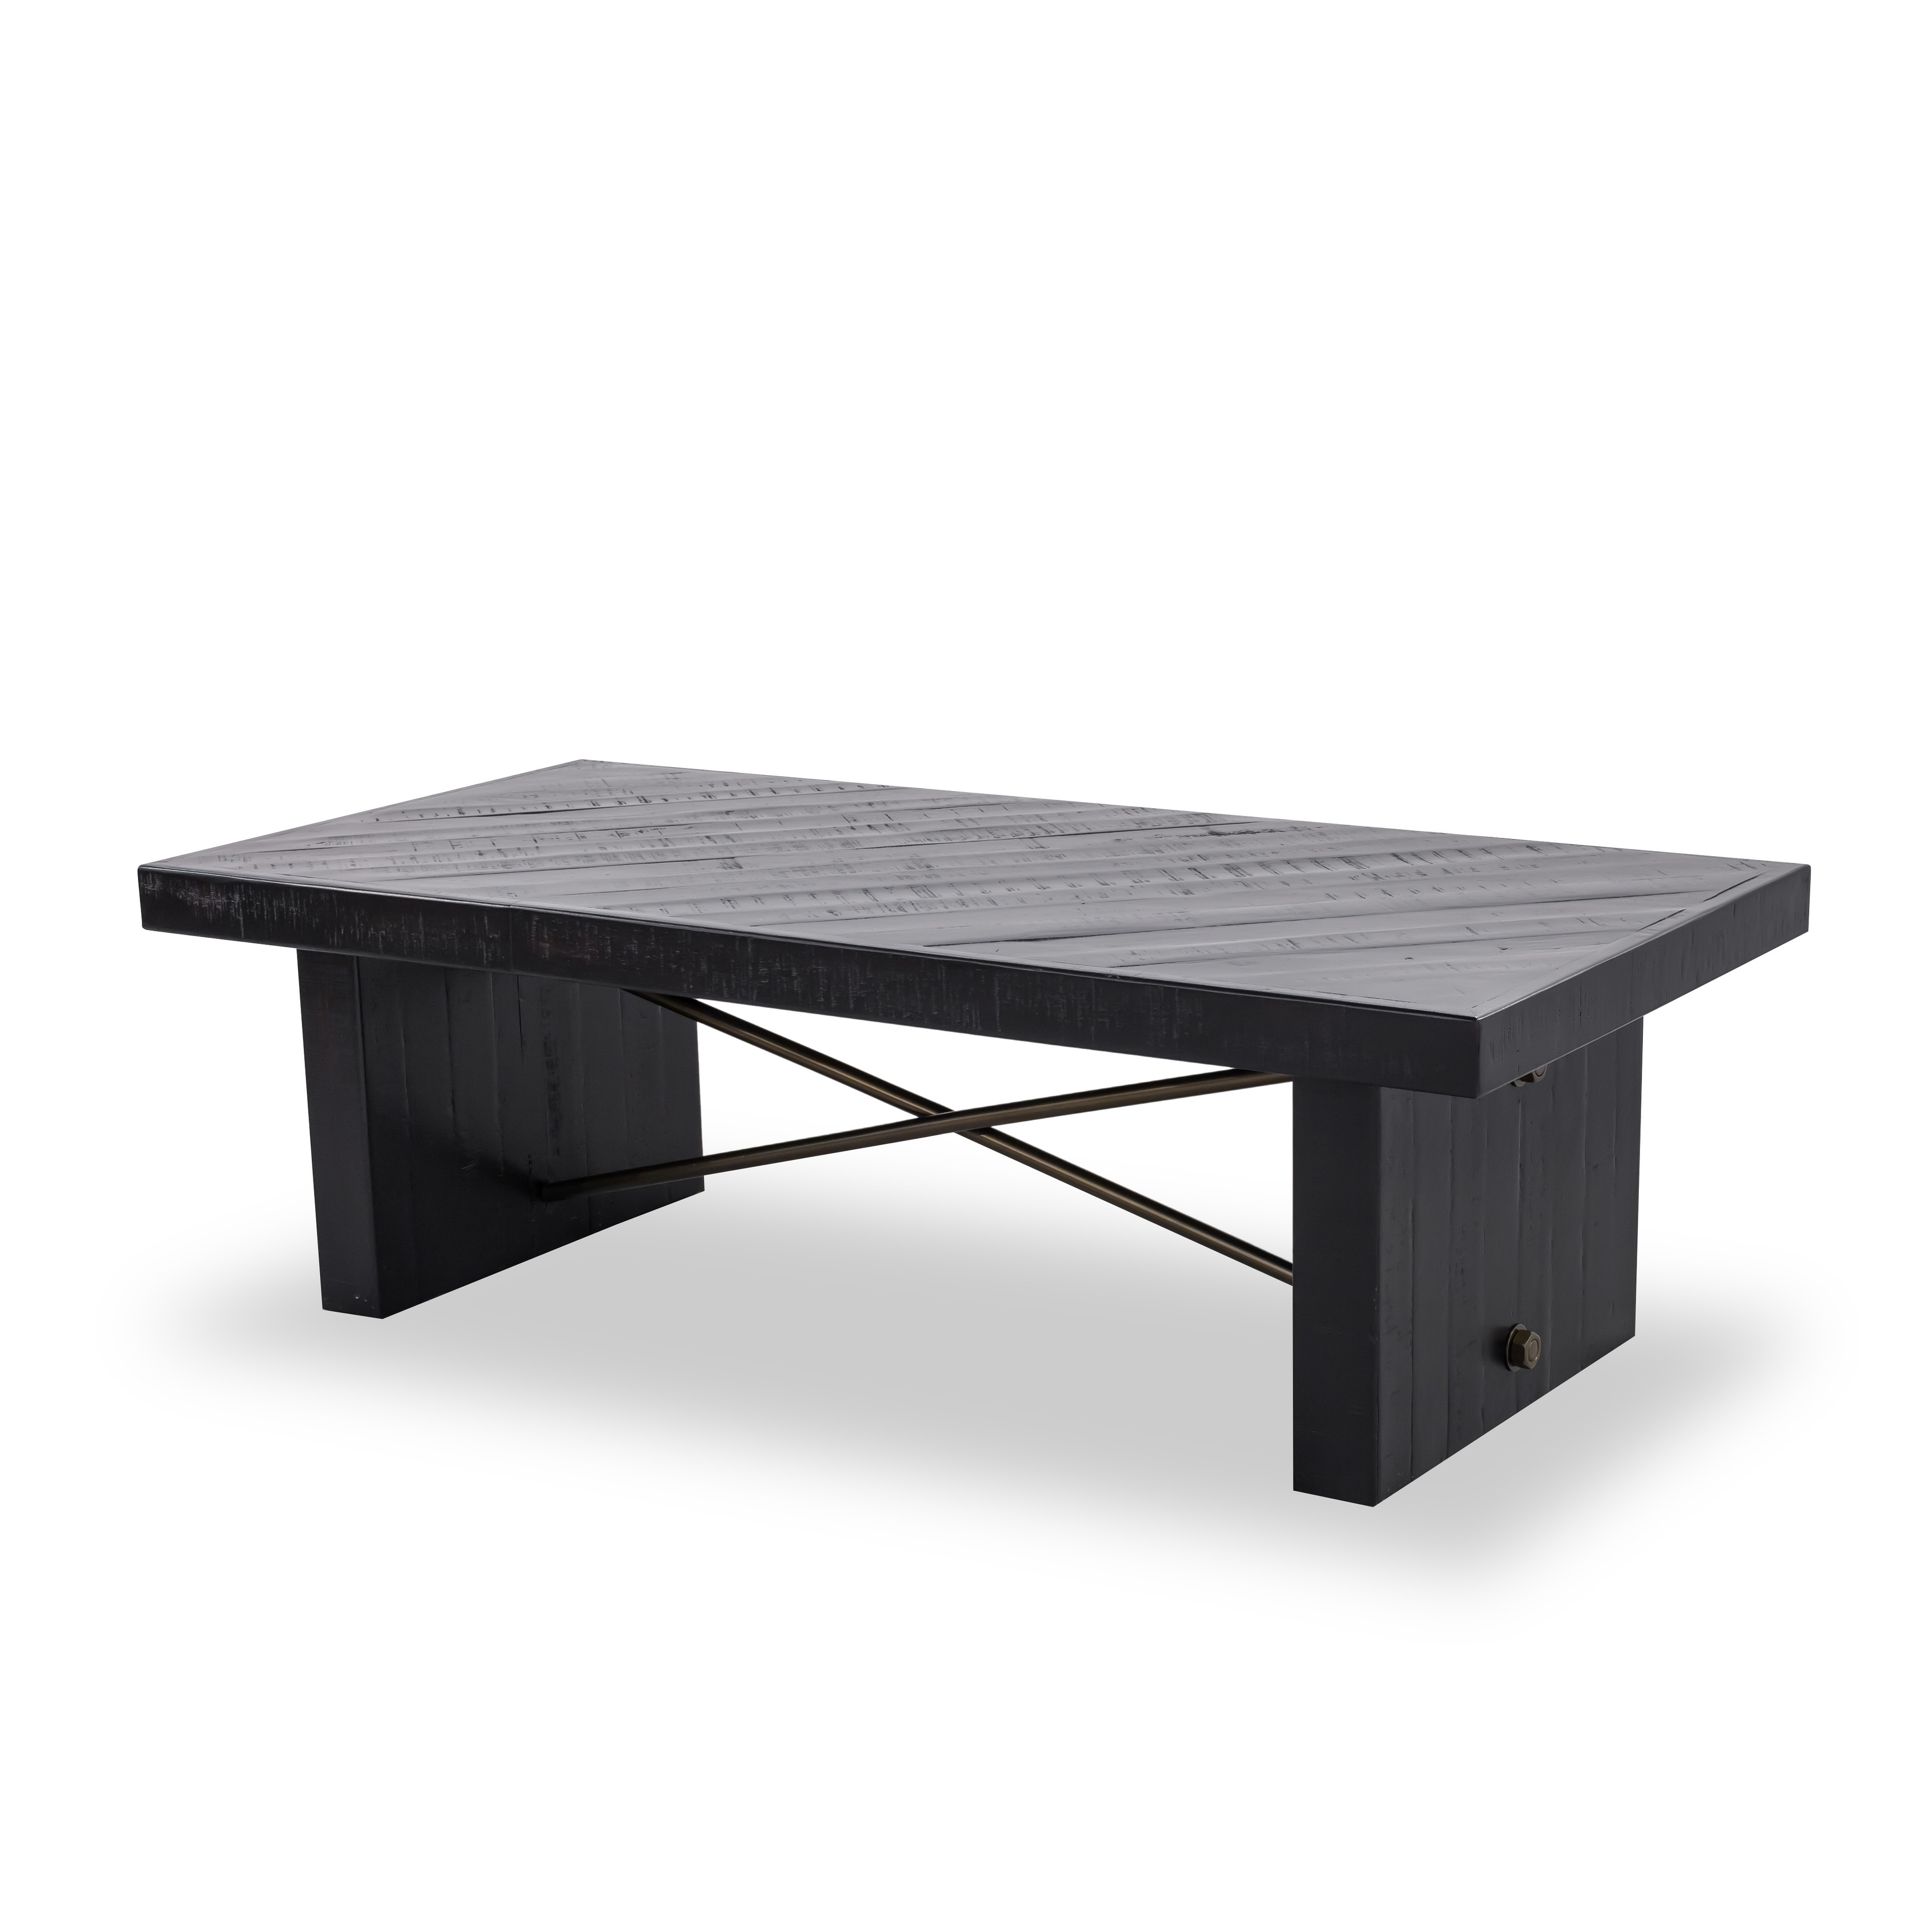 Shop aurelle home black wood farmhouse coffee table on sale free shipping today overstock com 18613310